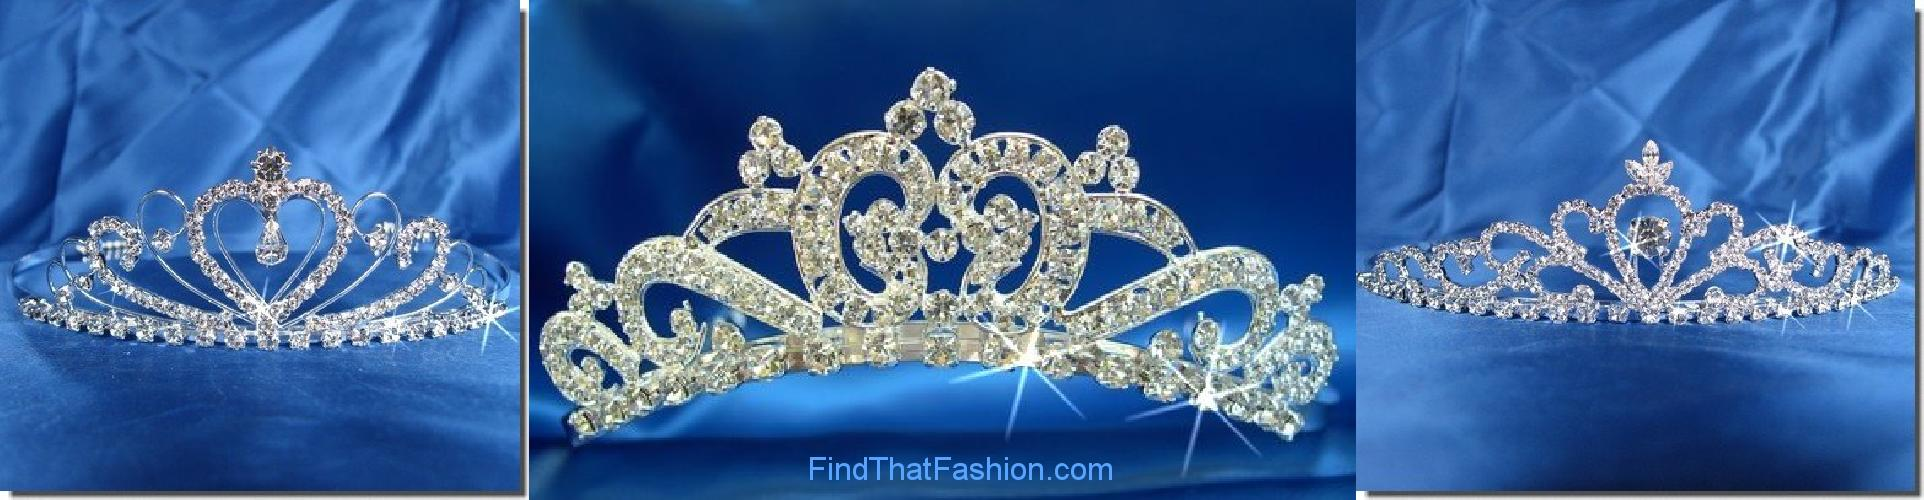 SparklyCrystal Wedding Tiaras